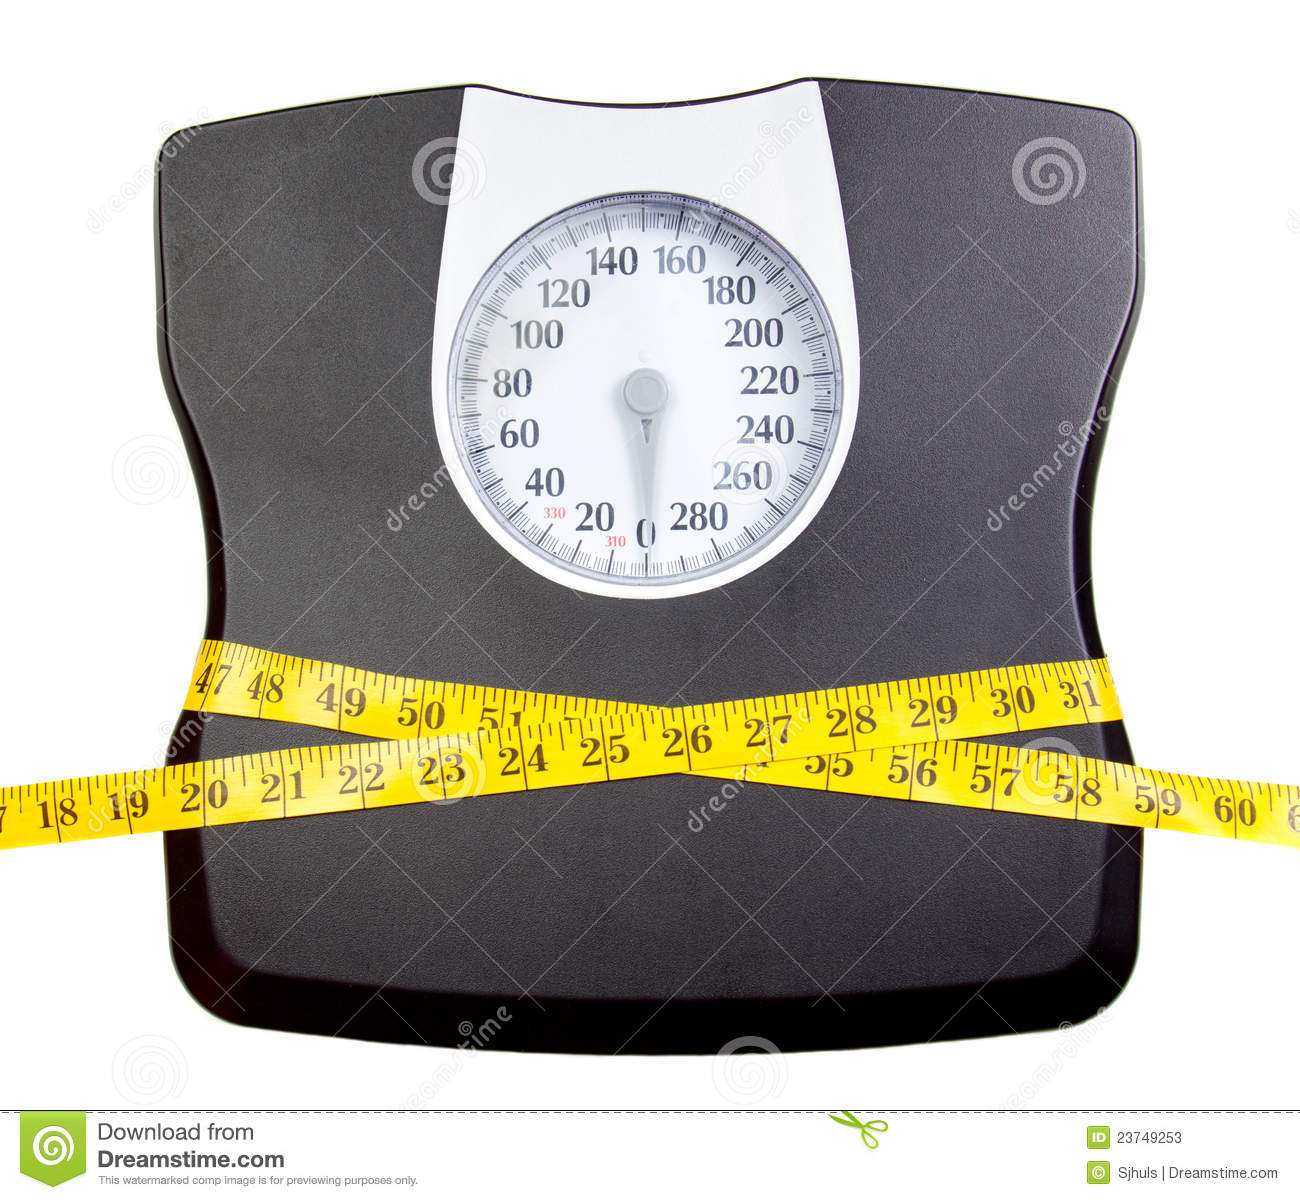 Bathroom Scale With A Measuring Tape Stock Photos   Image  23749253